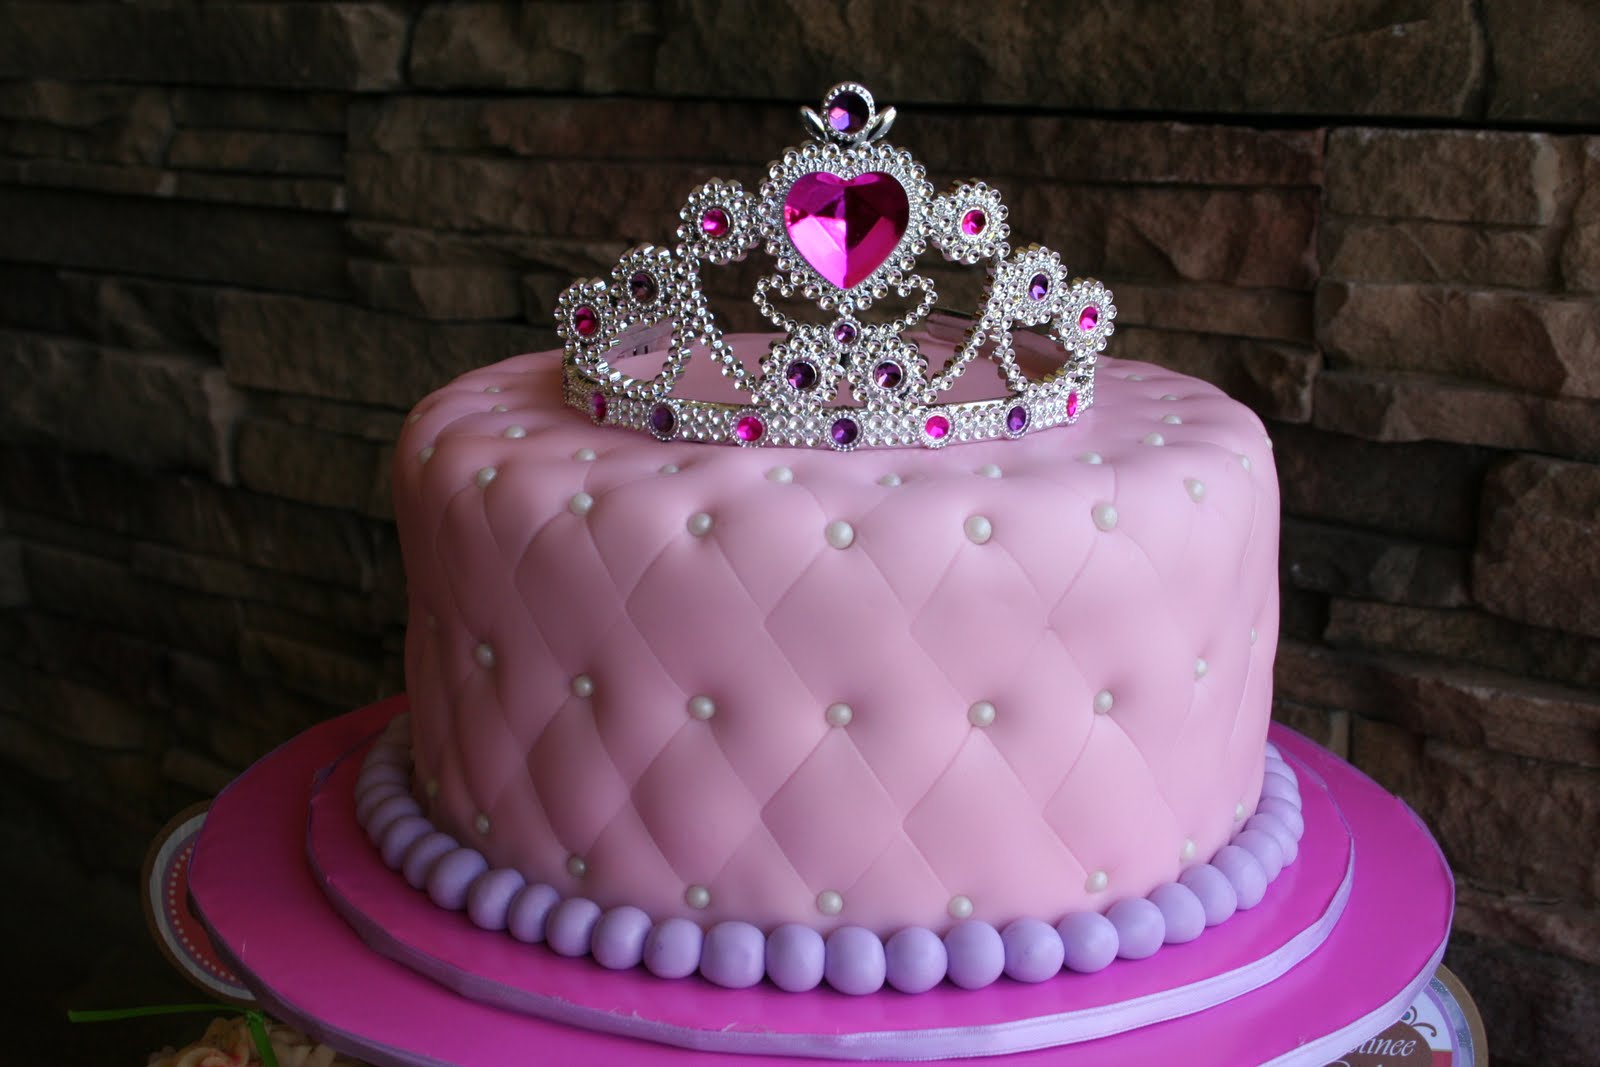 Birthday Cake Pictures Of Princess : cakes by narleen kristel: a princess  1st birthday...